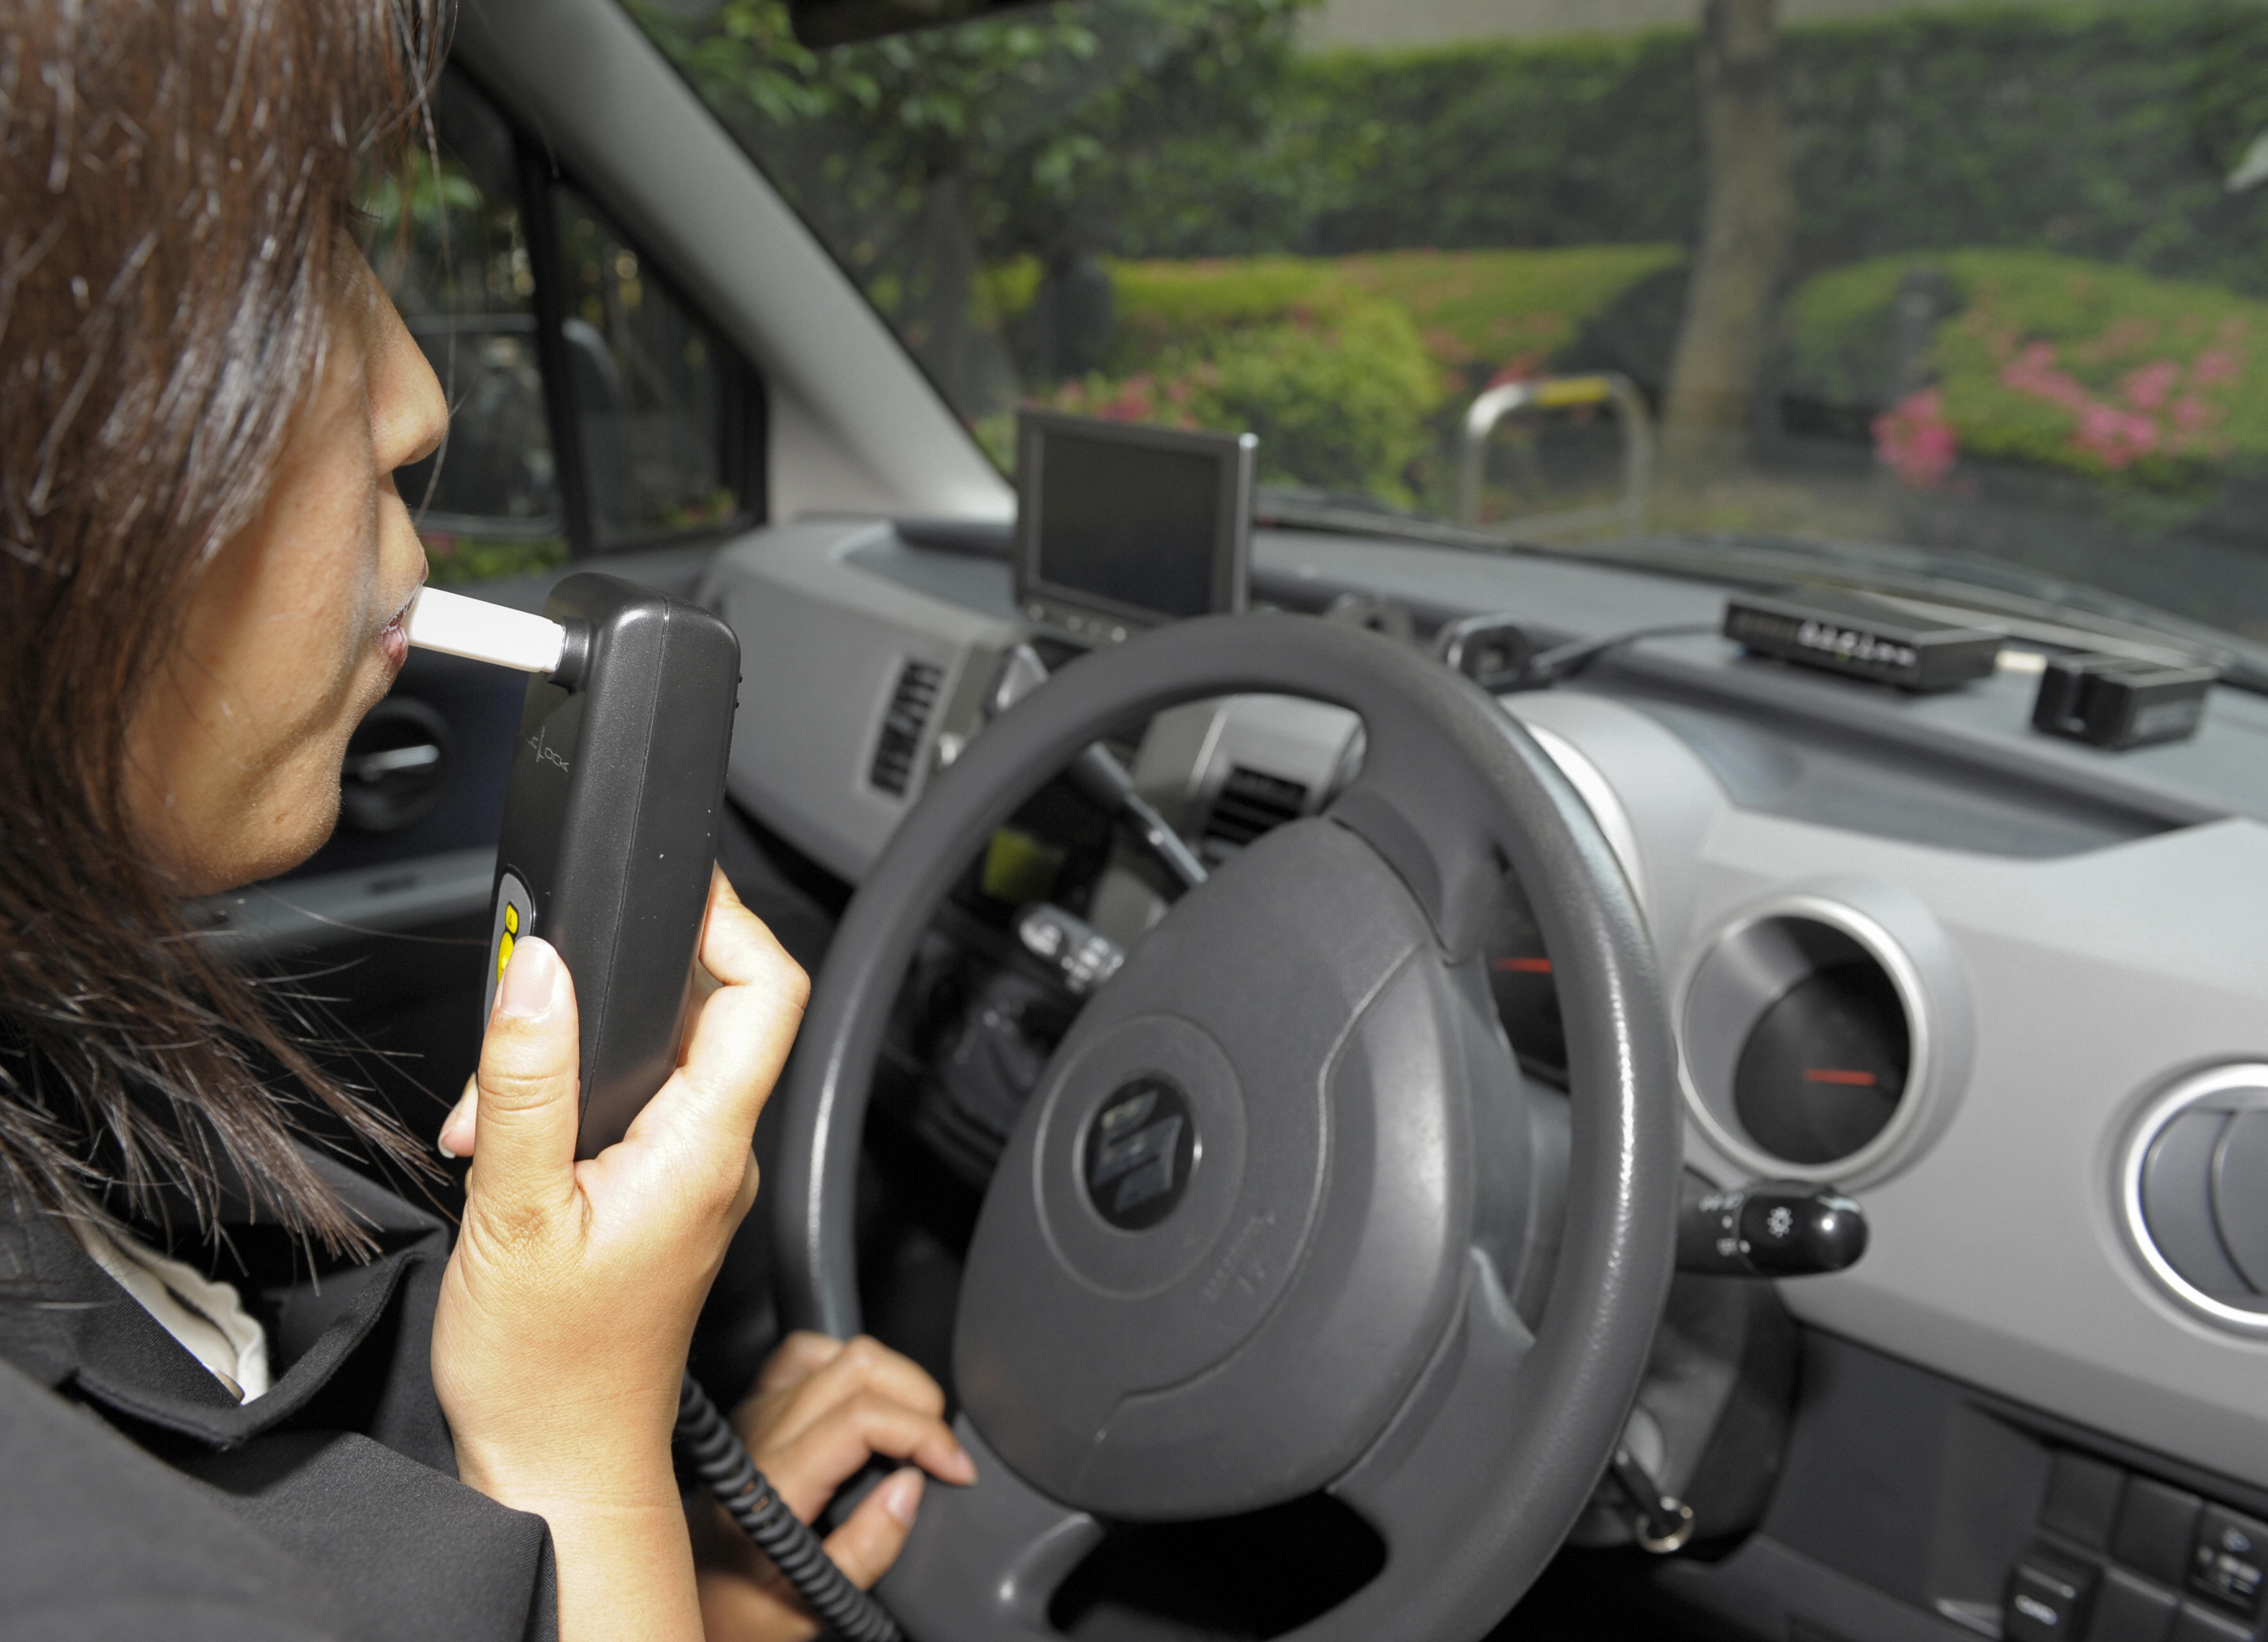 Drunk driving deaths down 15 in states requiring ignition lock for dui offenders